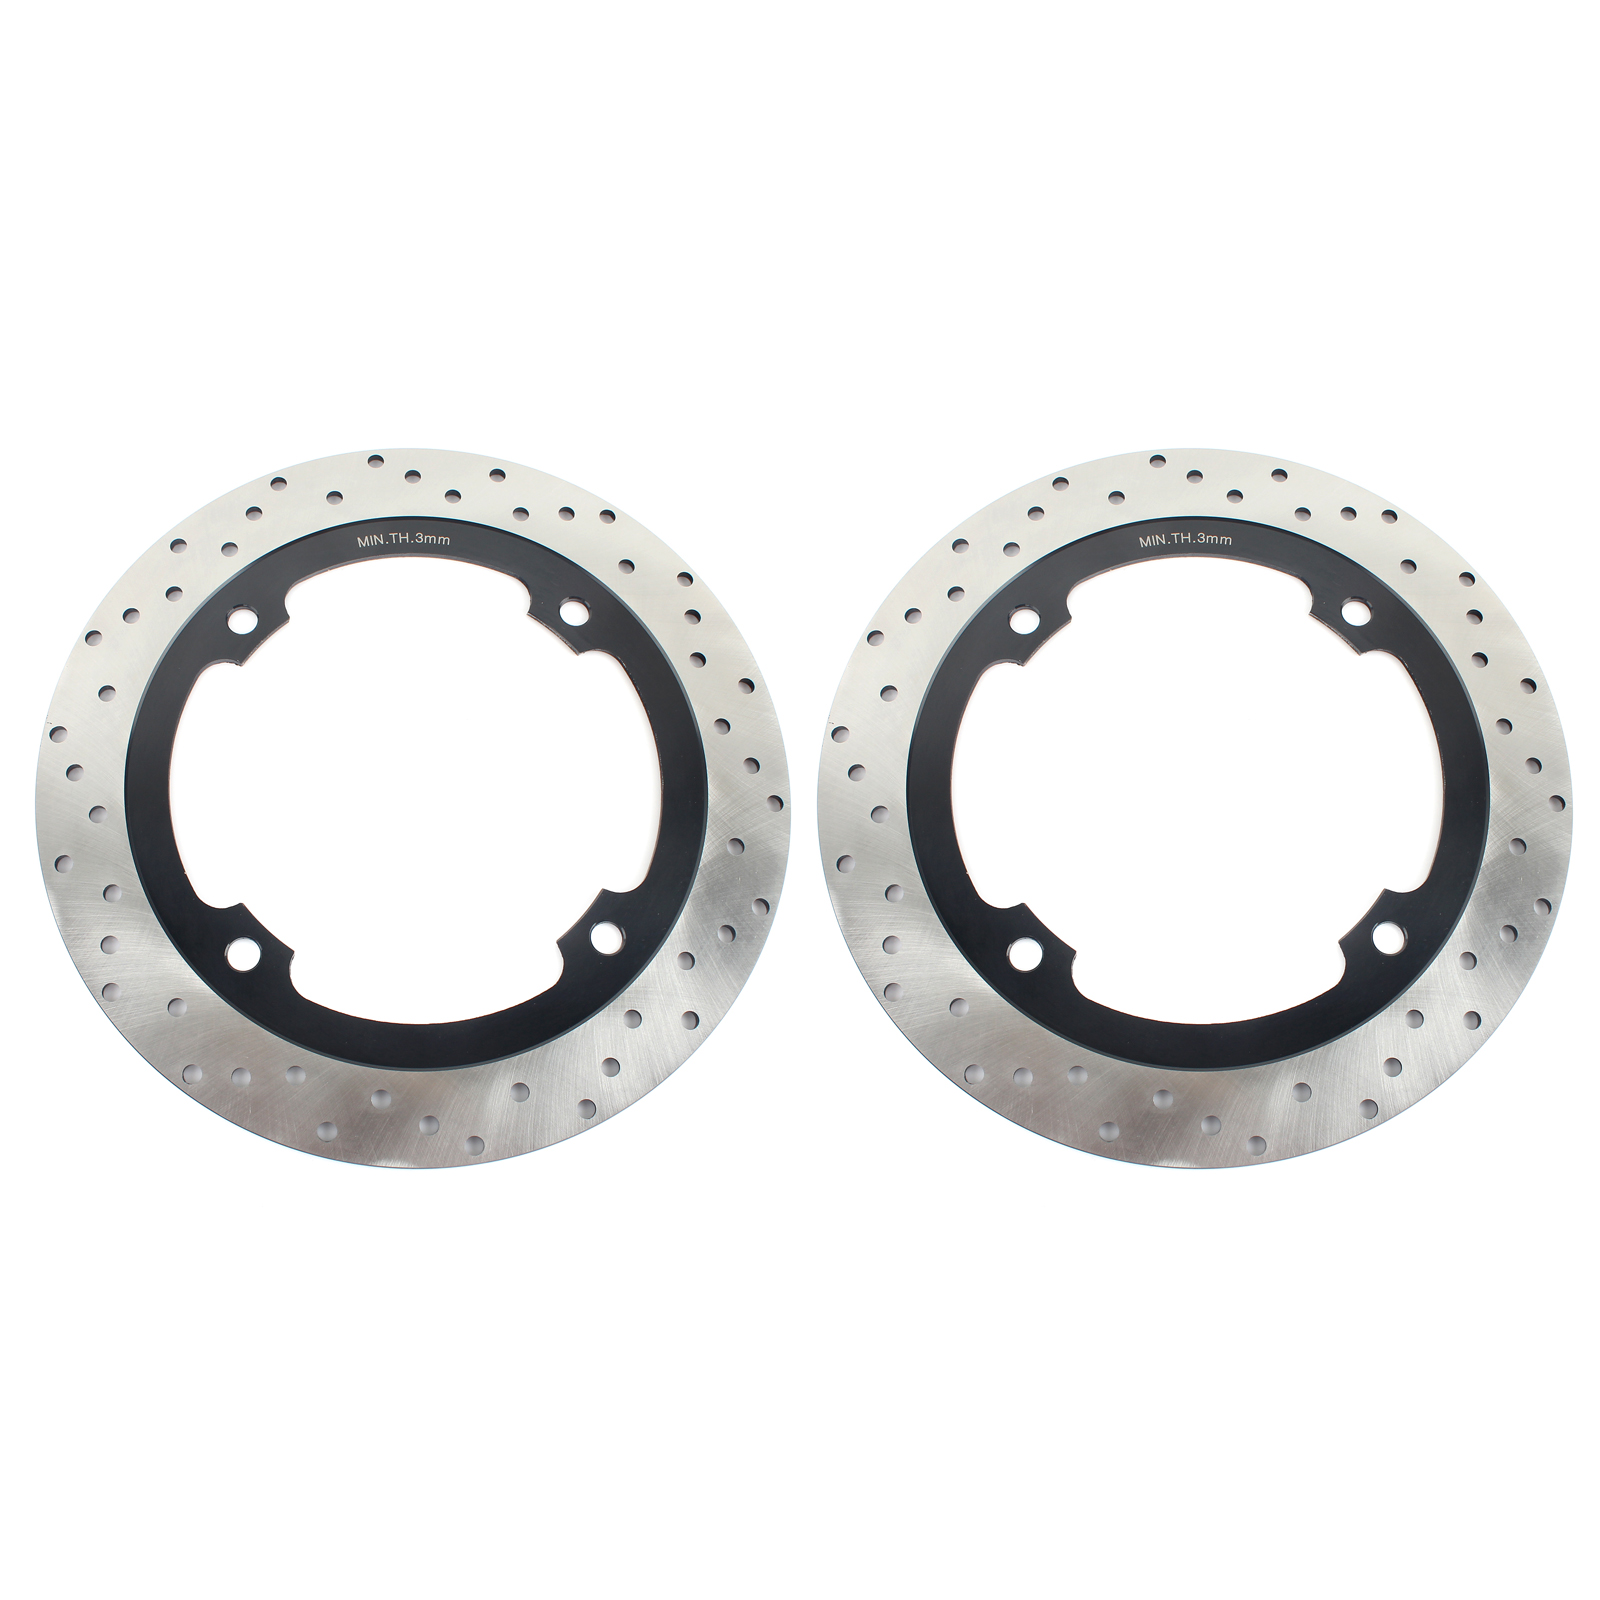 BIKINGBOY 256mm Front Brake Discs Disks Rotors For <font><b>Honda</b></font> <font><b>XL</b></font> 600 V <font><b>Transalp</b></font> 1997-2002 <font><b>XL</b></font> <font><b>650</b></font> V <font><b>Transalp</b></font> 2000-2007 image